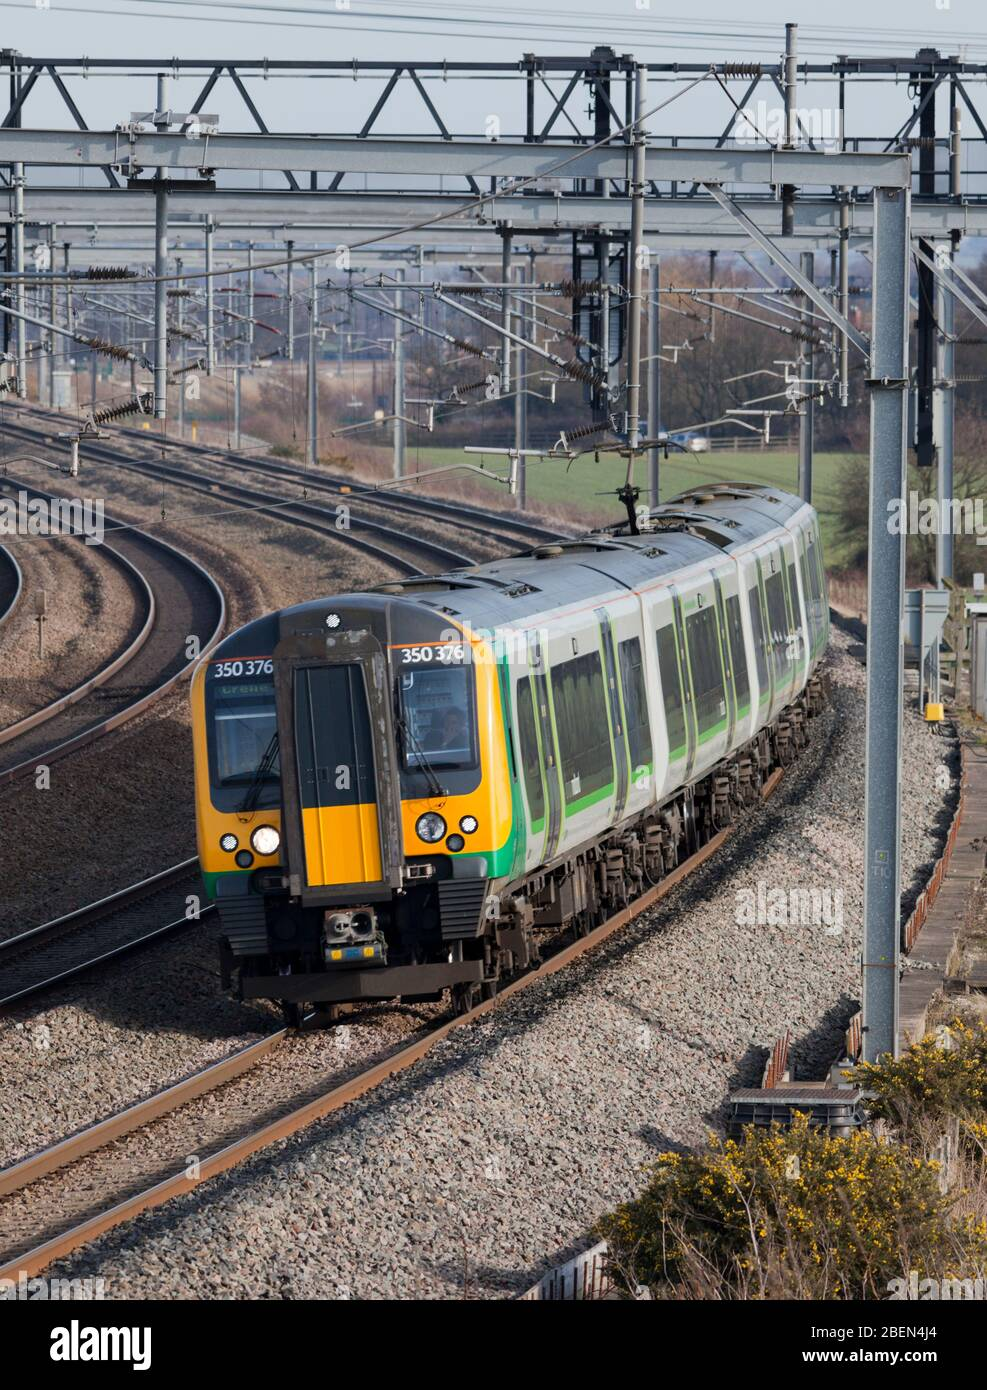 London Midland Siemens Desiro class 350 train on the 4 track west coast mainline in the Trent valley, UK with a local all stations stopping train Stock Photo